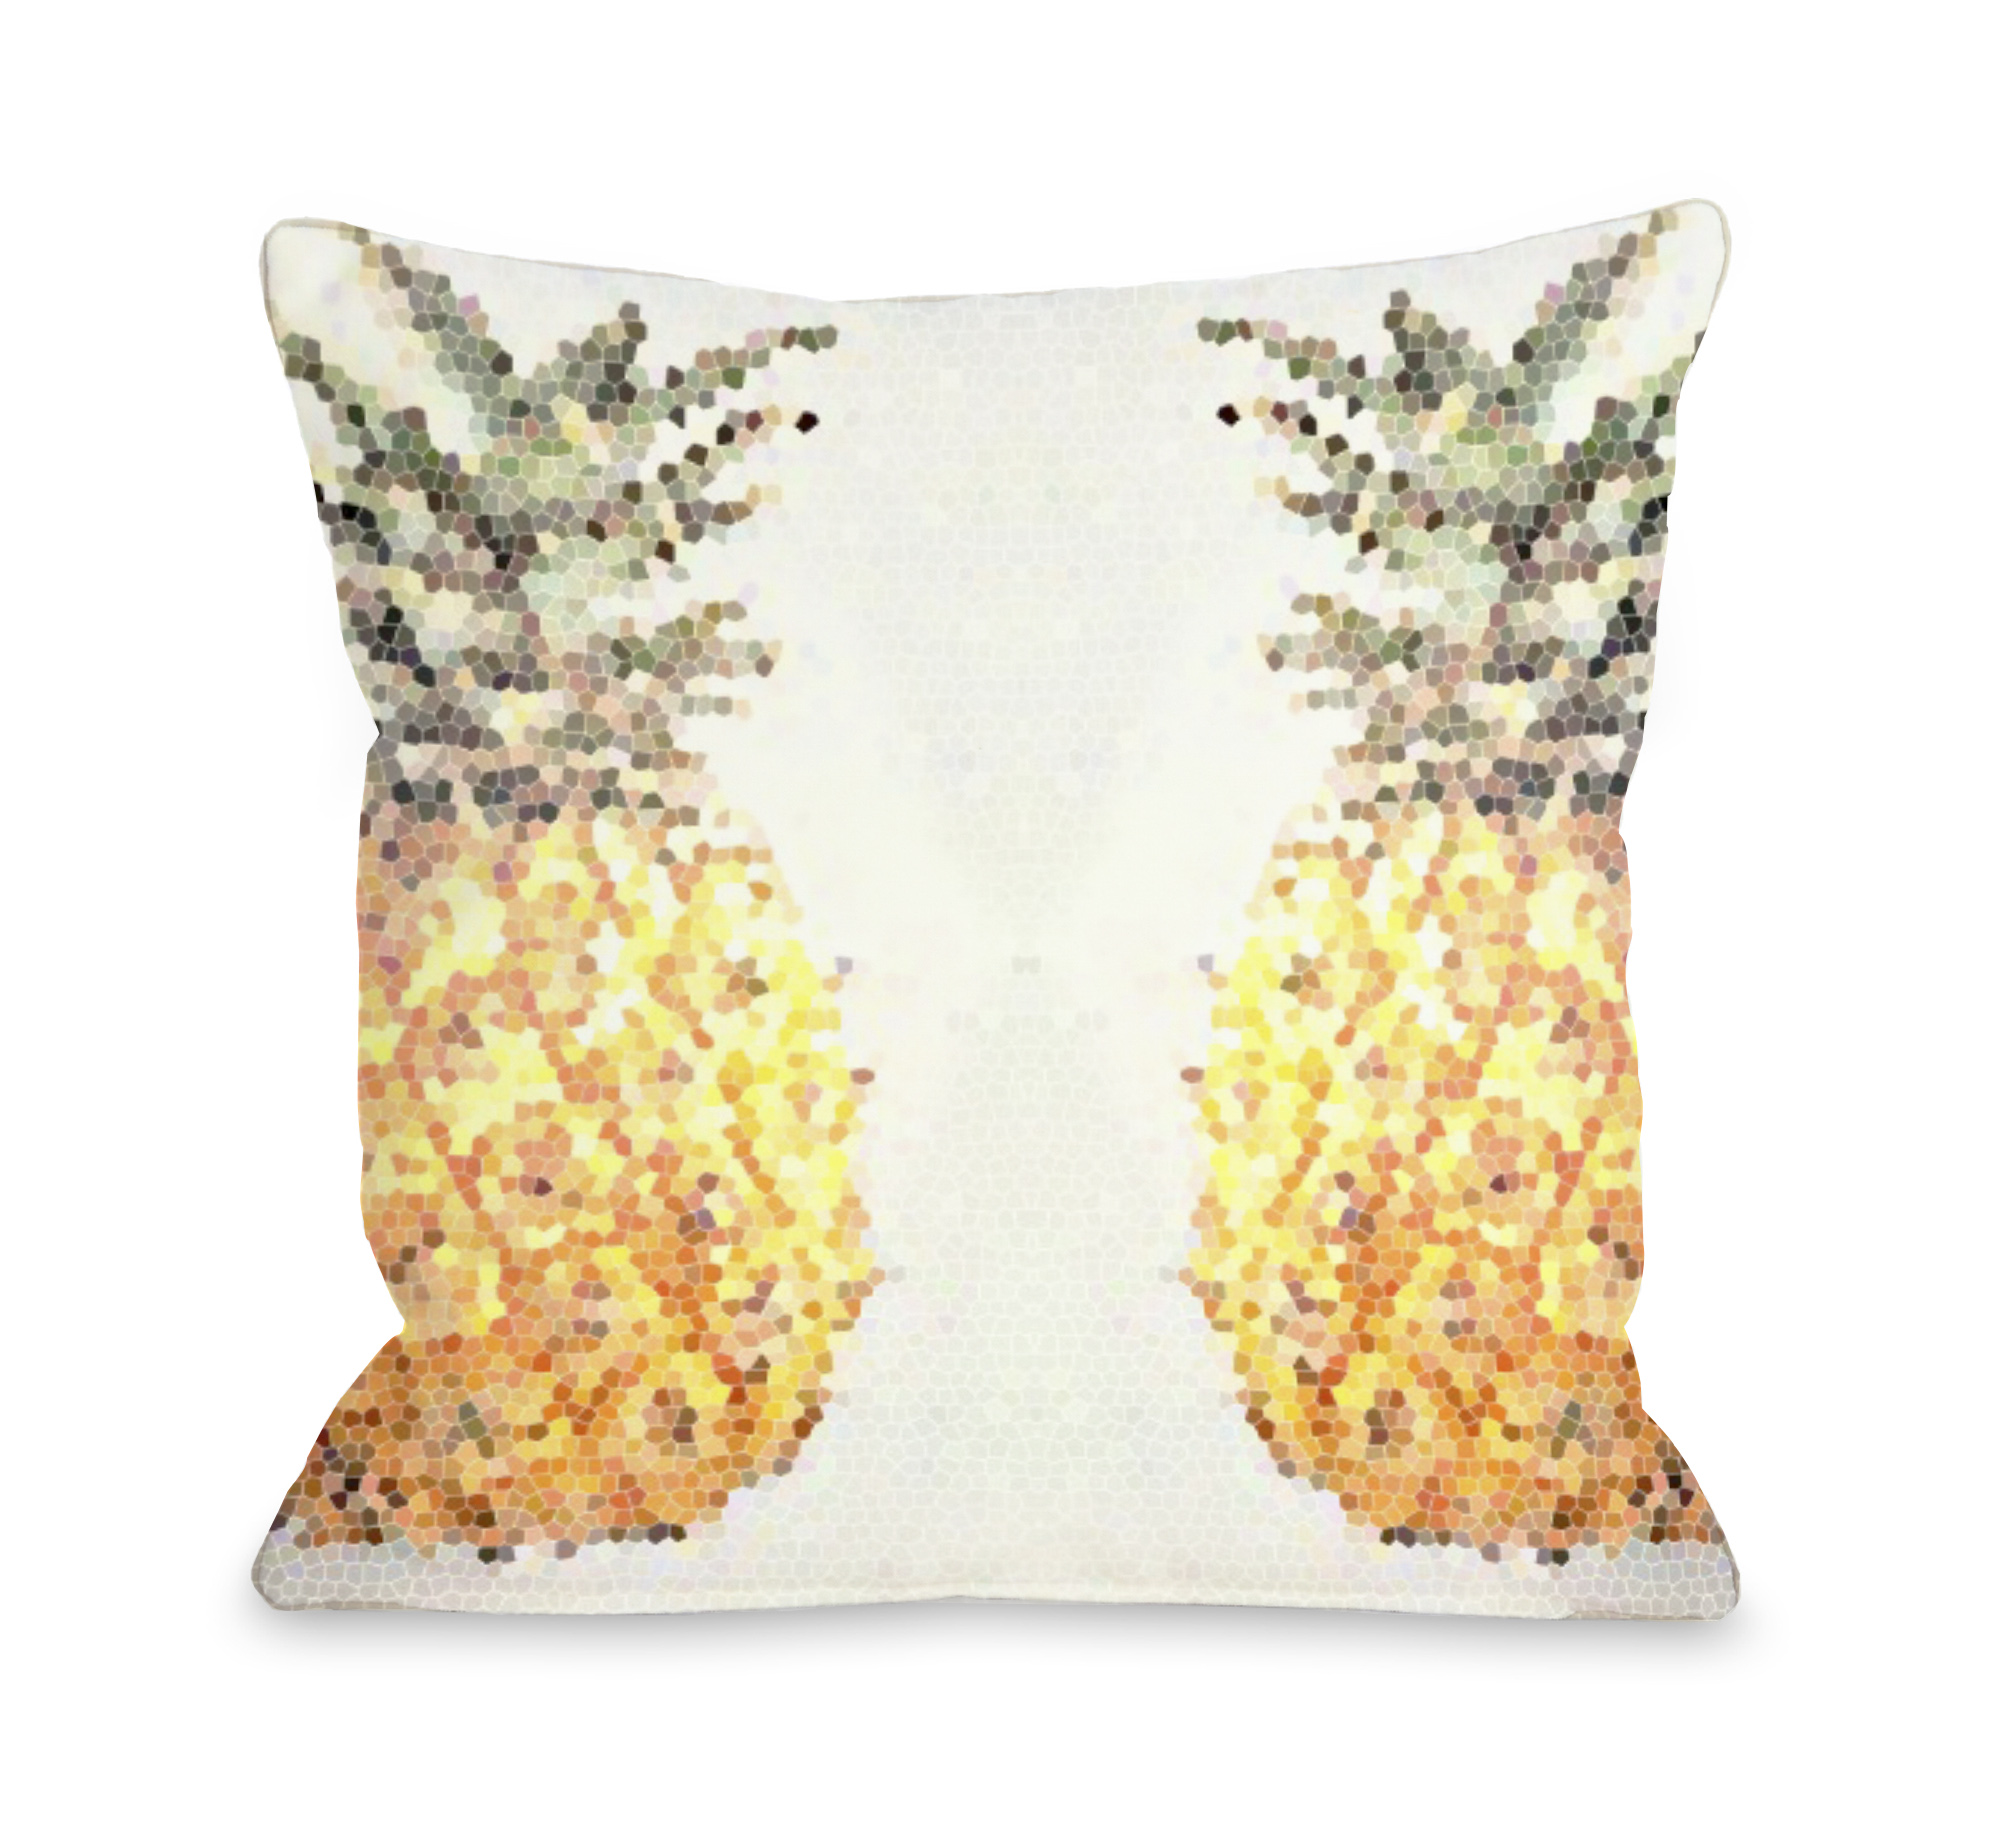 Pineapple Half 18x18 Pillow by OBC